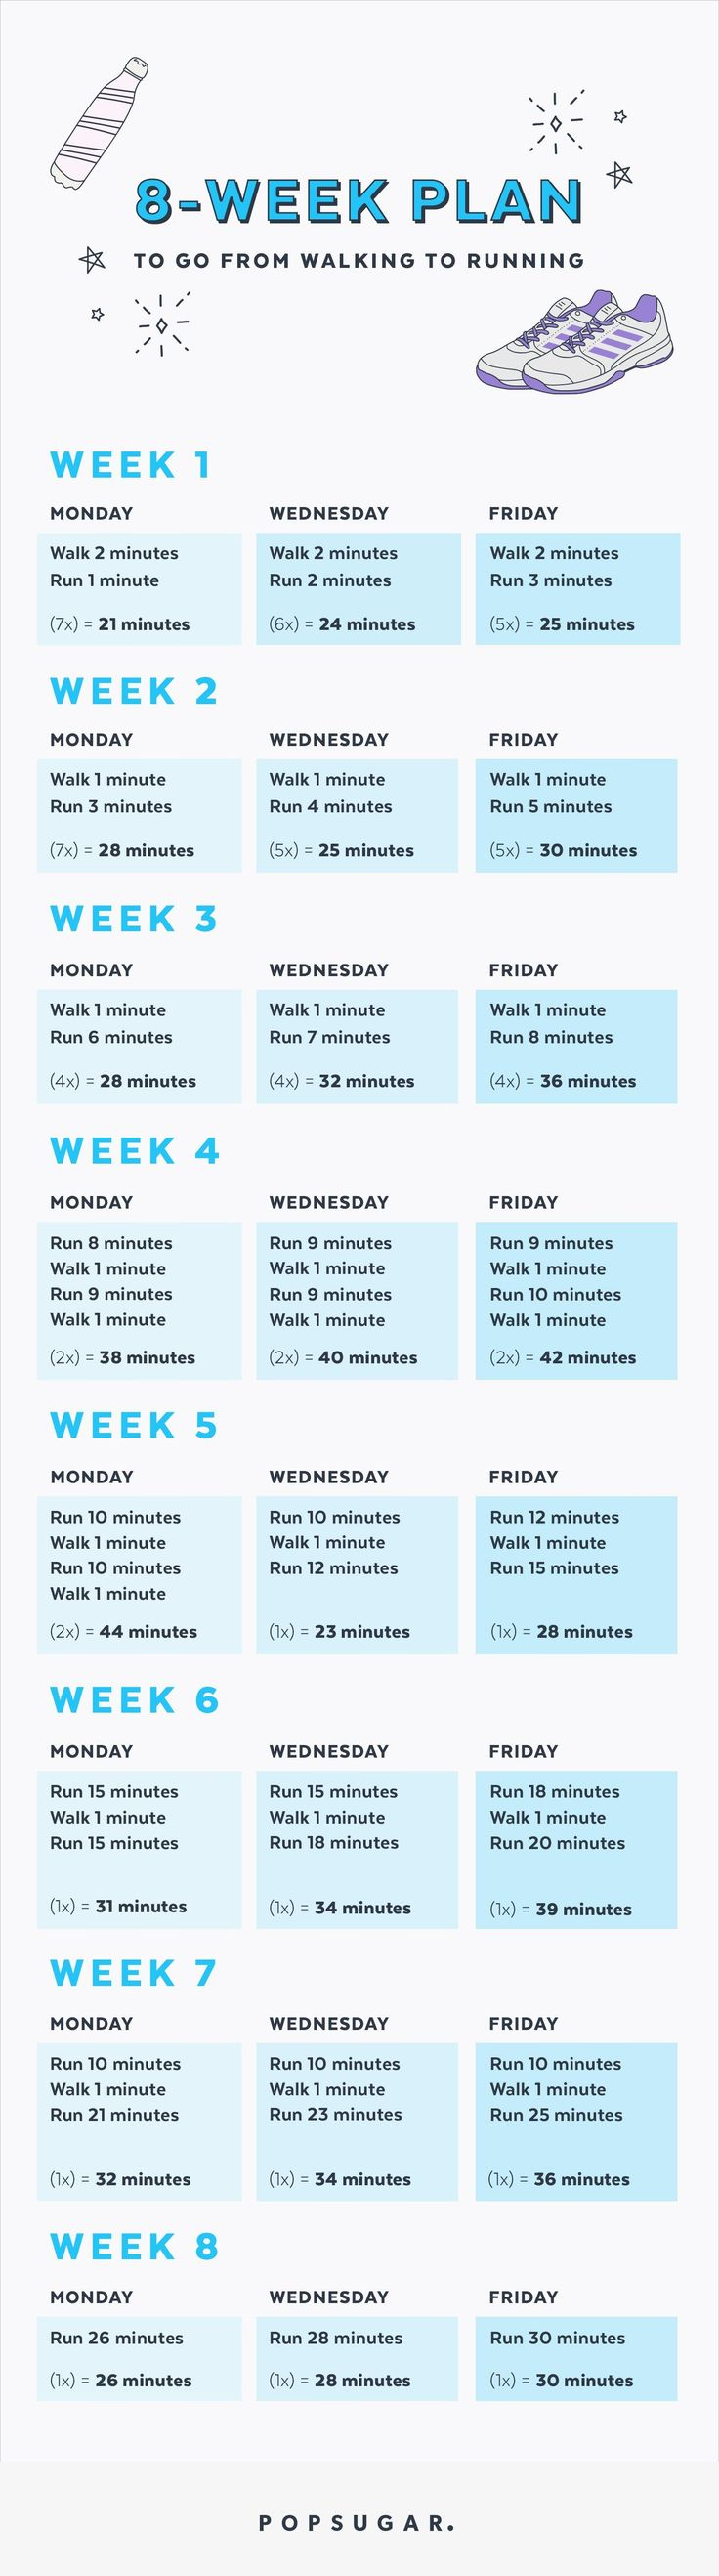 521 best How Many Calories images on Pinterest